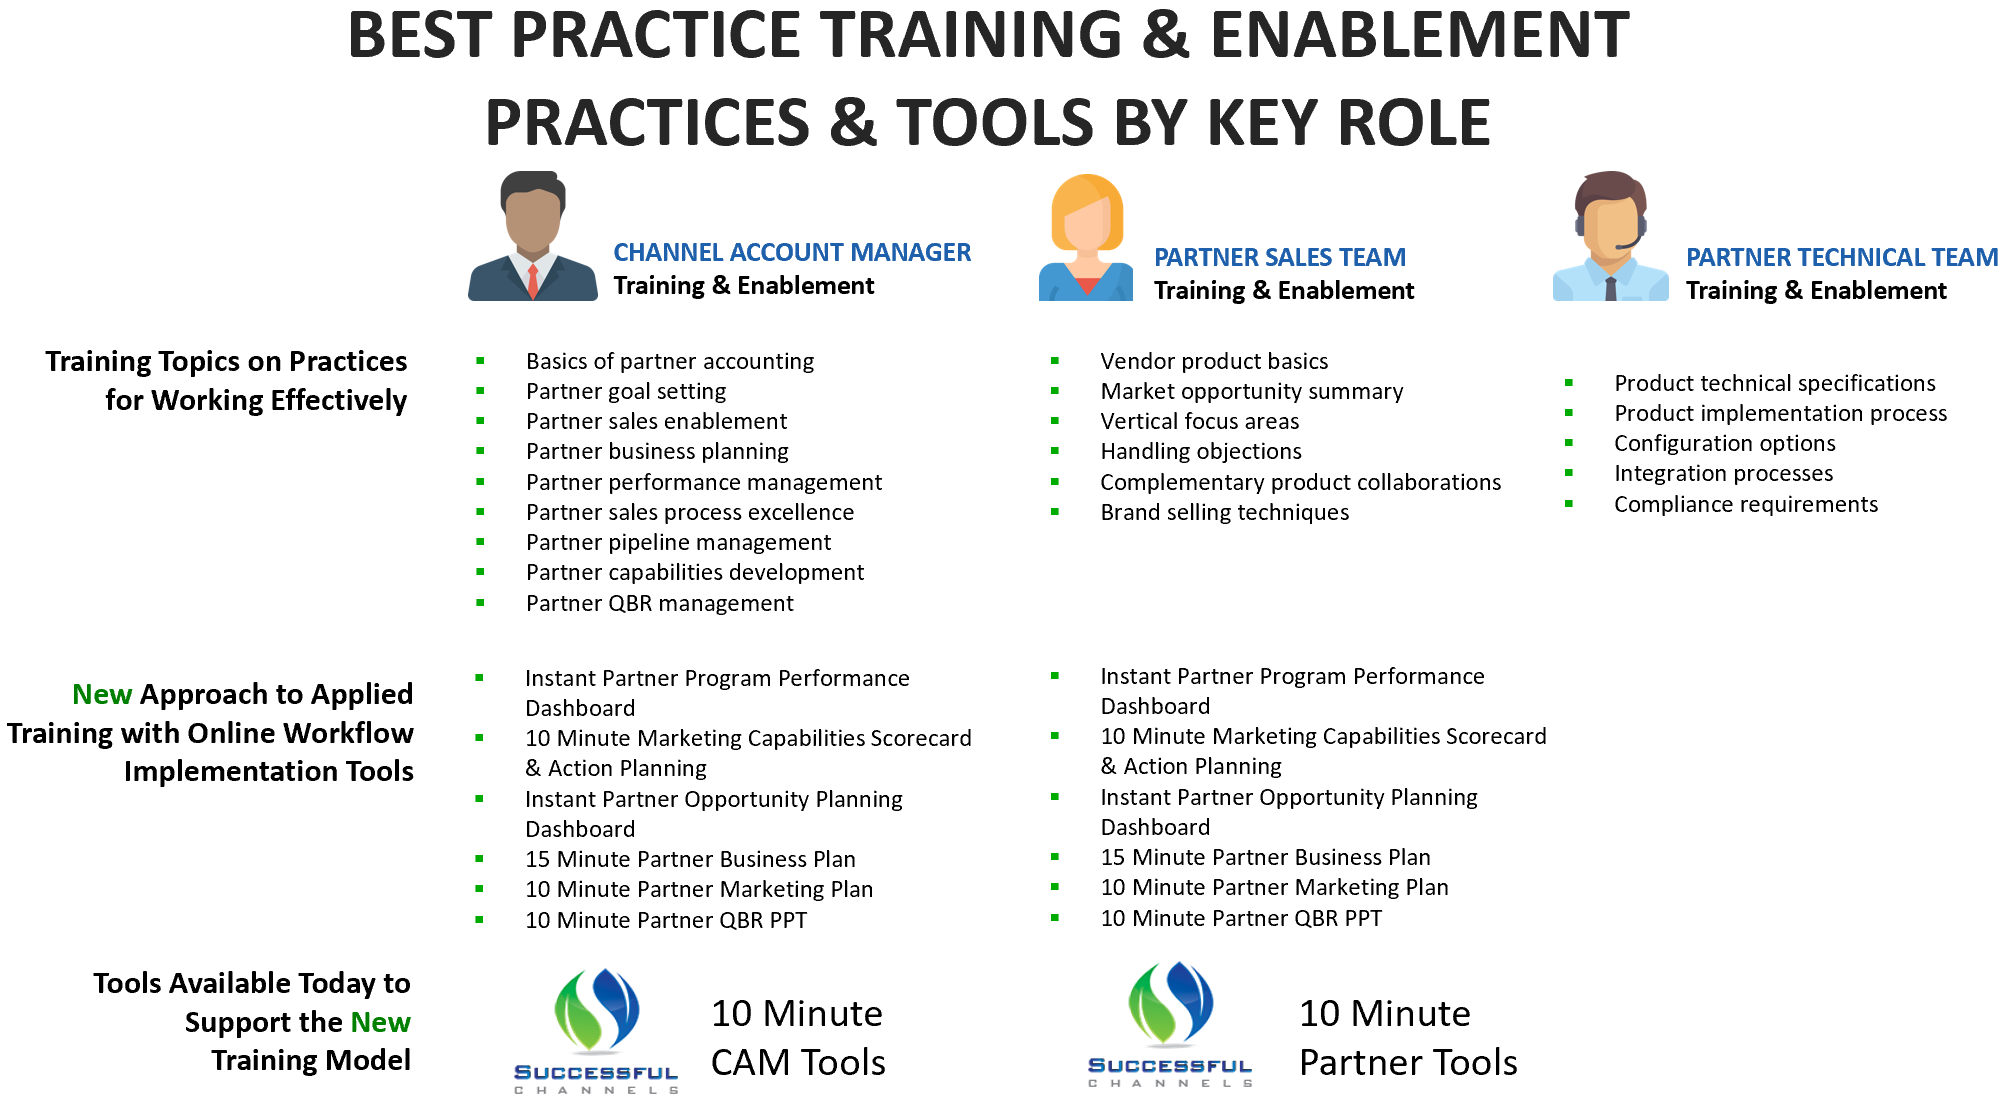 Best Practice Training